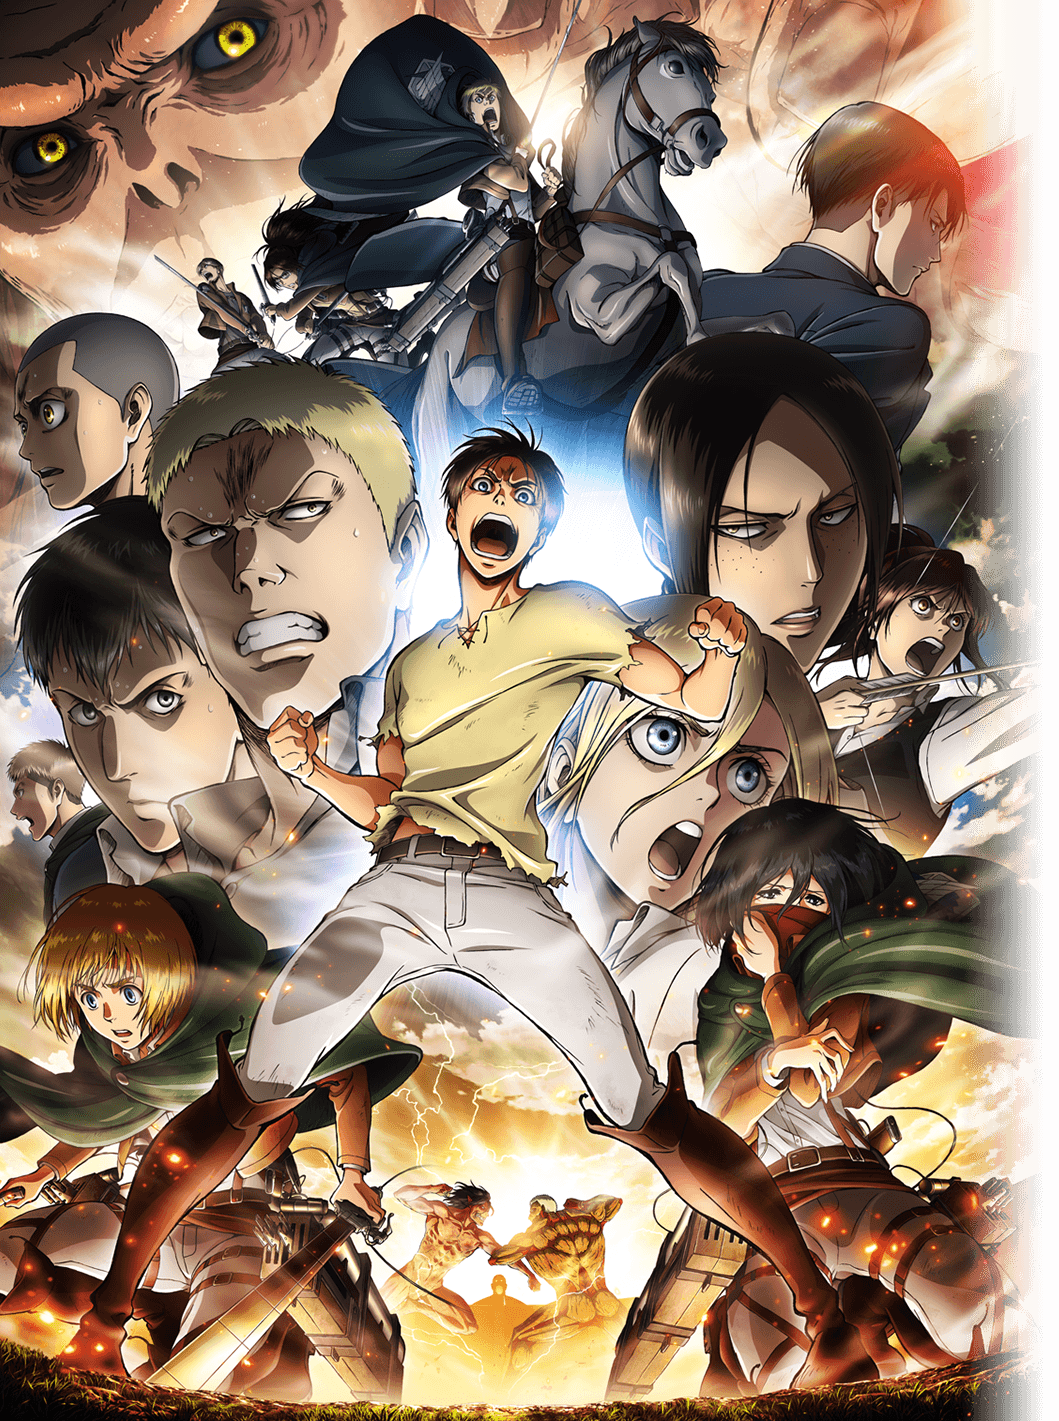 Attack On Titan Season 3 Wallpaper Posted By Samantha Tremblay